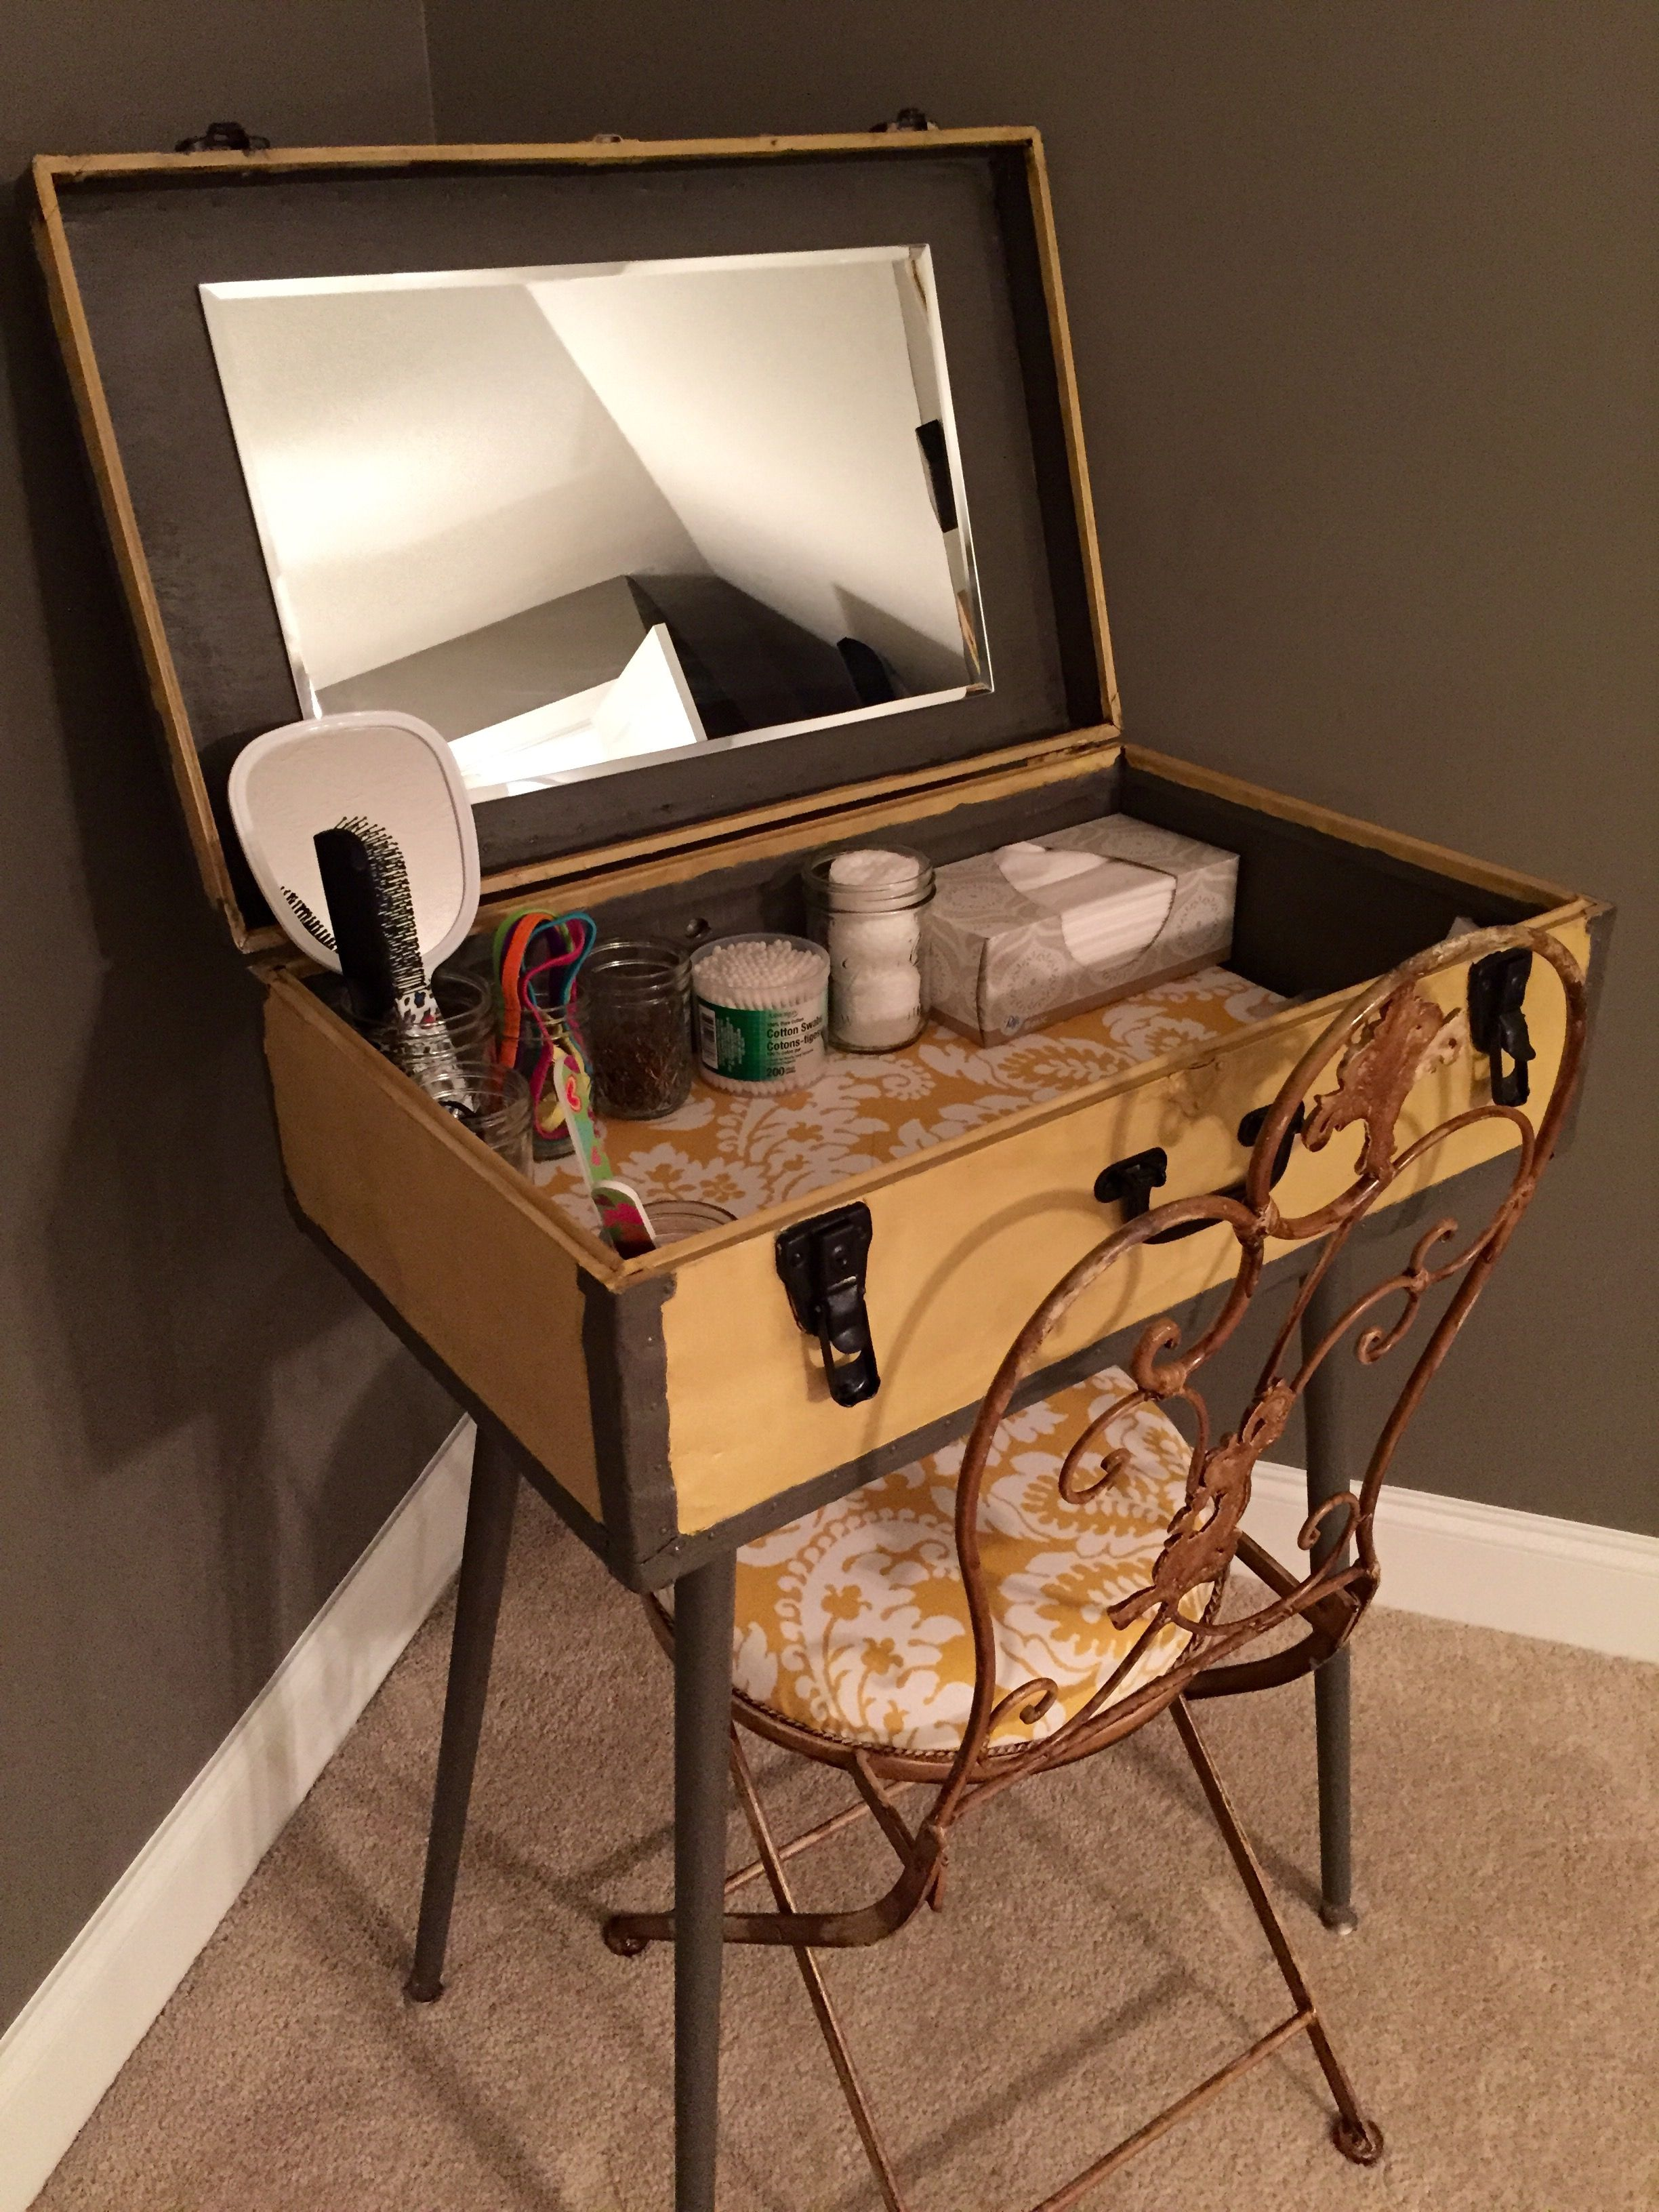 Diy Antique Suitcase Repurposed As A Vanity For My Guest Room Tin